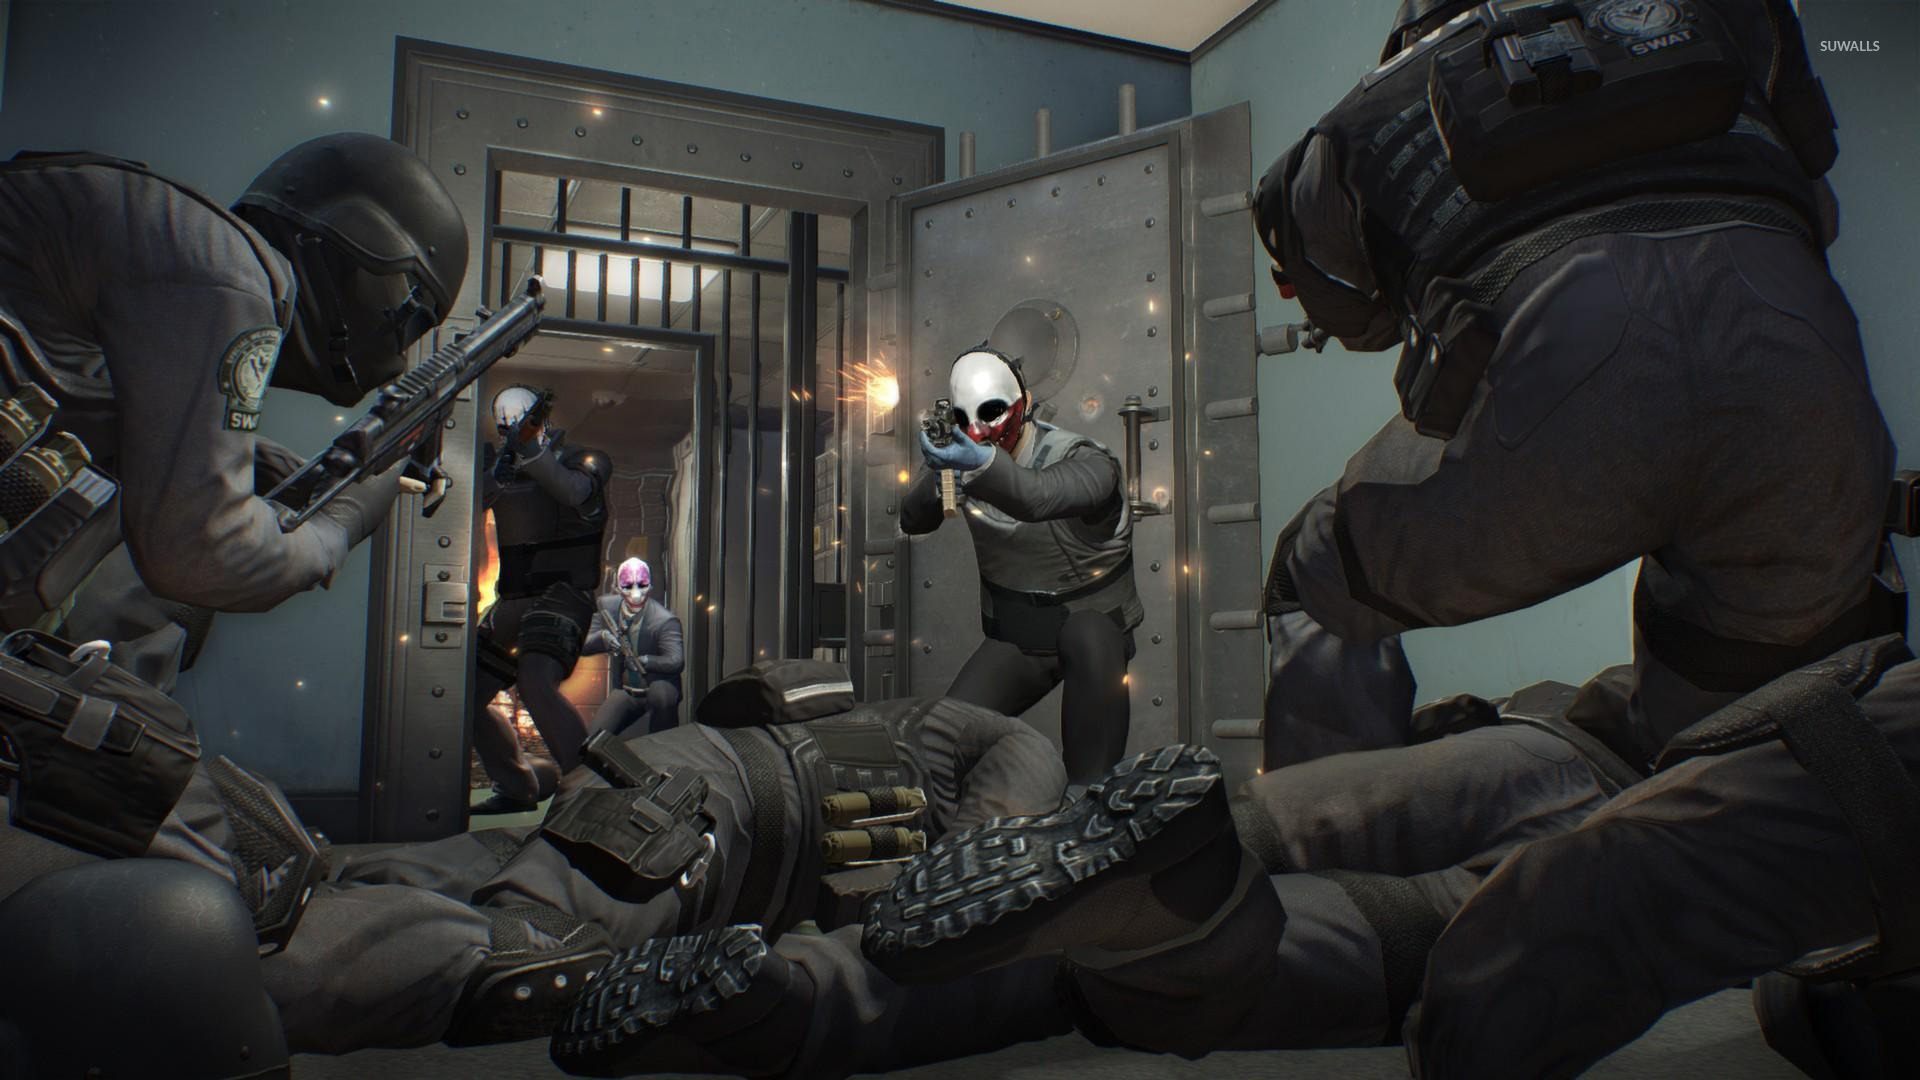 Payday 2 9 Wallpaper Game Wallpapers 22960